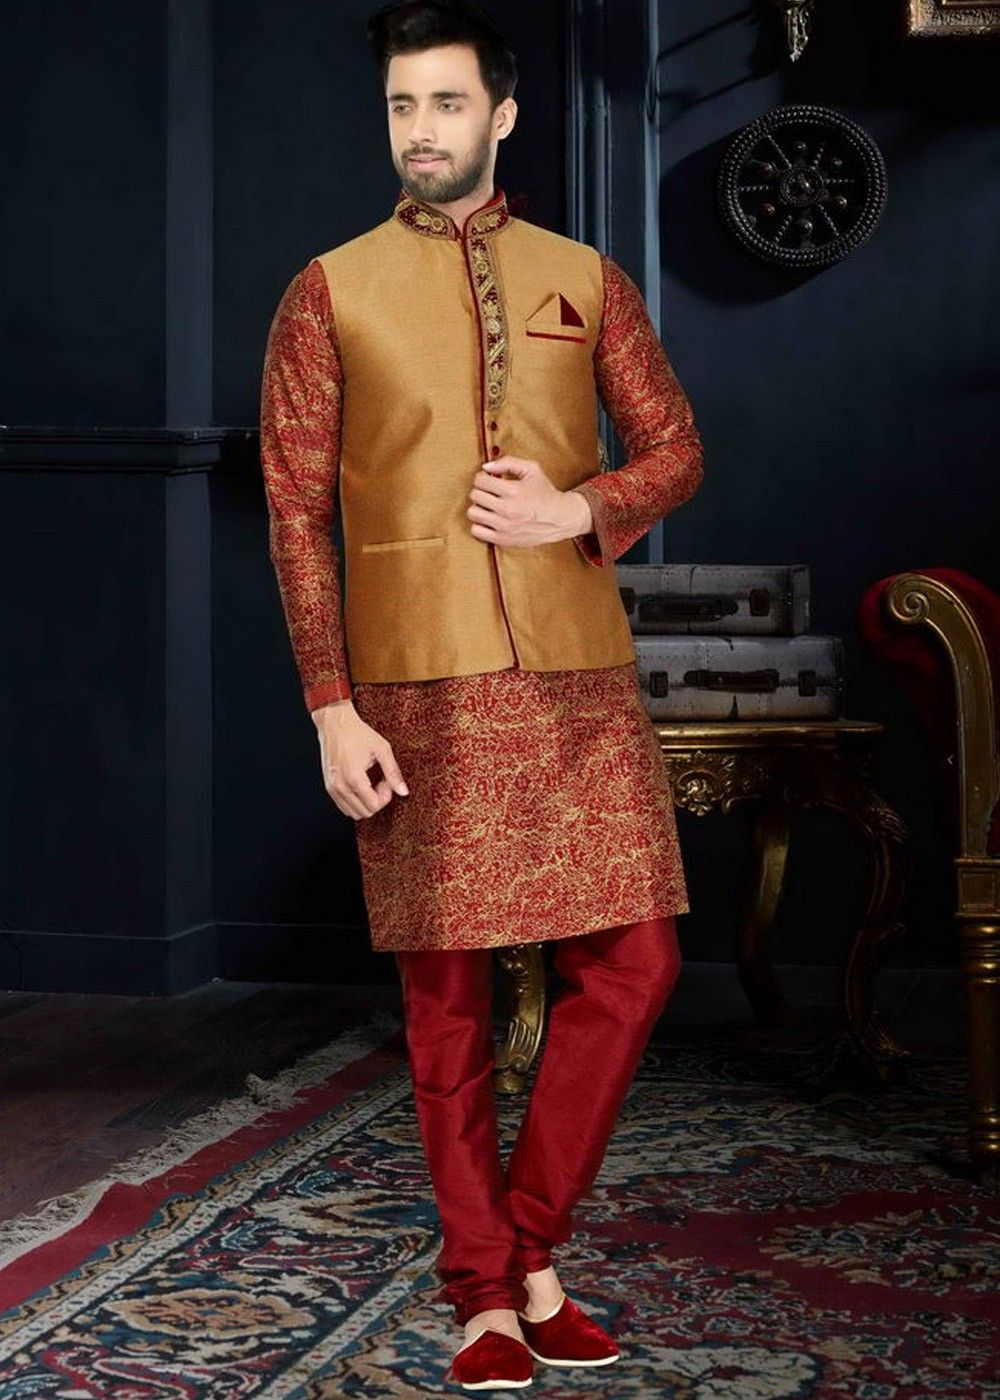 de5b736d644 Art #Silk readymade printed #kurta in #maroon along with #golden # nehruJacket designed with moulded buttons, lace and stone work.